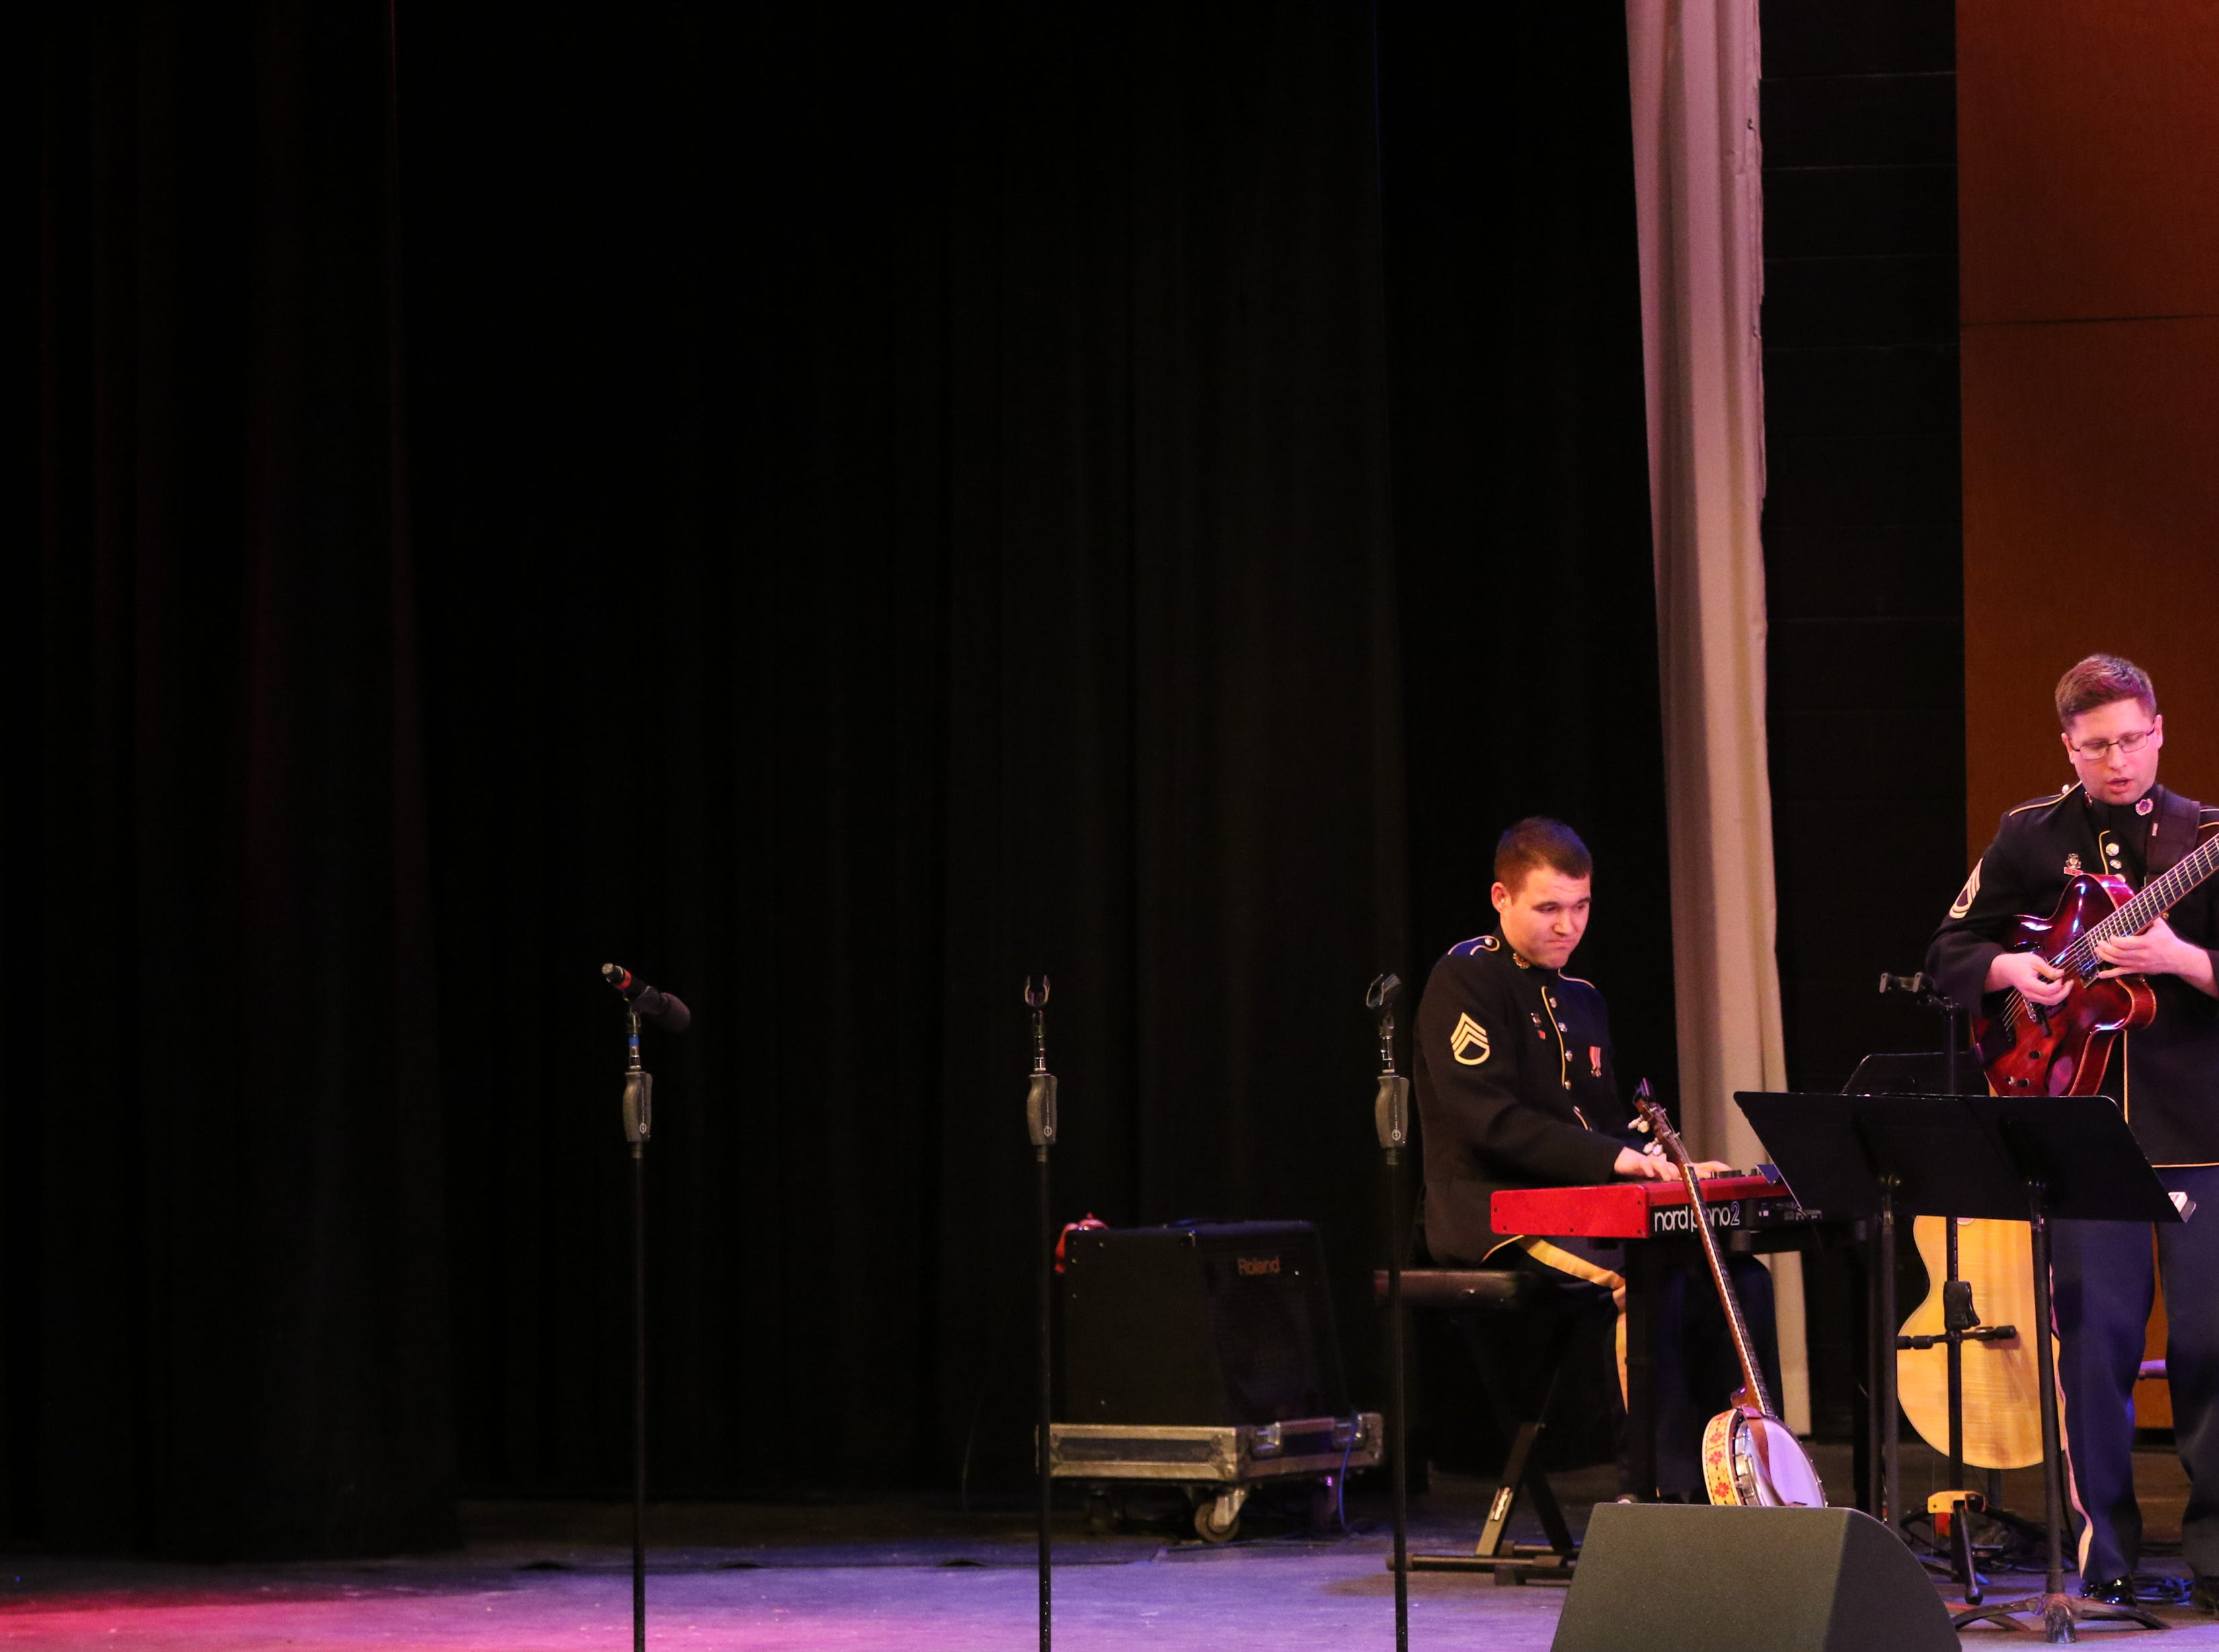 Staff Sgt. Anthony Pocetti, of Hamilton, NJ, plays the piano, while Sgt. First Class Jonathan Epley, of Greenville, TN. plays the guitar.  The United States Army Jazz Ambassadors Field Band performed at Wayne Hills High School, Thursday, March 21, 2019.  This was the eleventh day of their tour, which lasts more than a month.